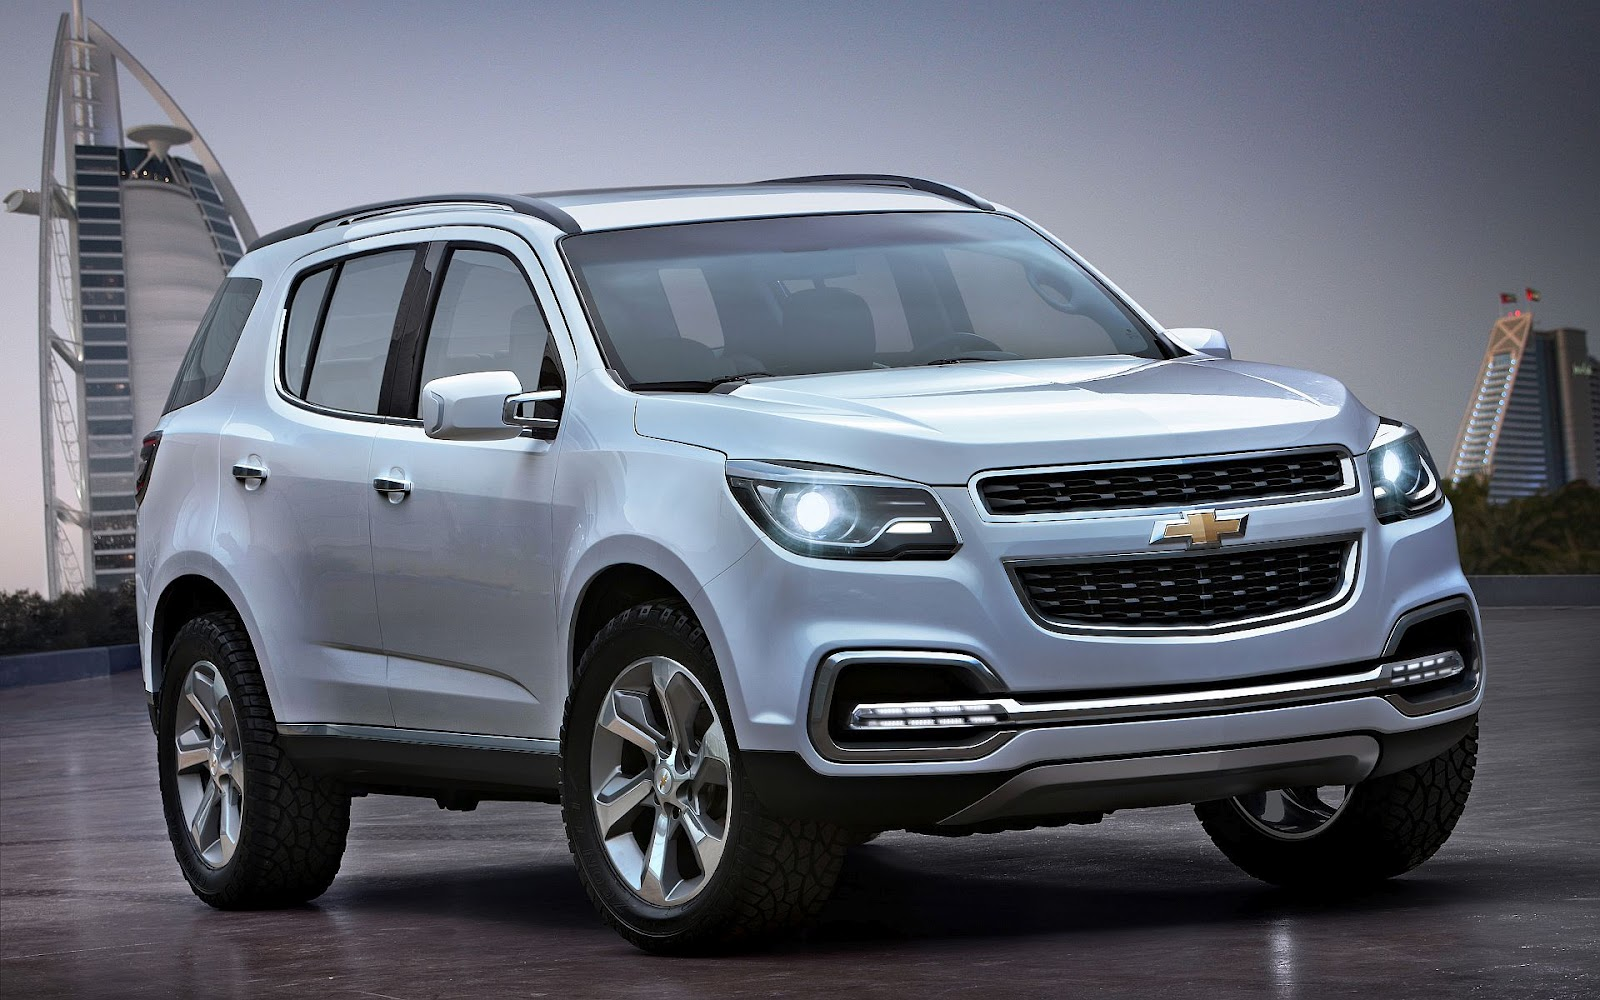 Chevrolet trailblazer 2012 photo - 2